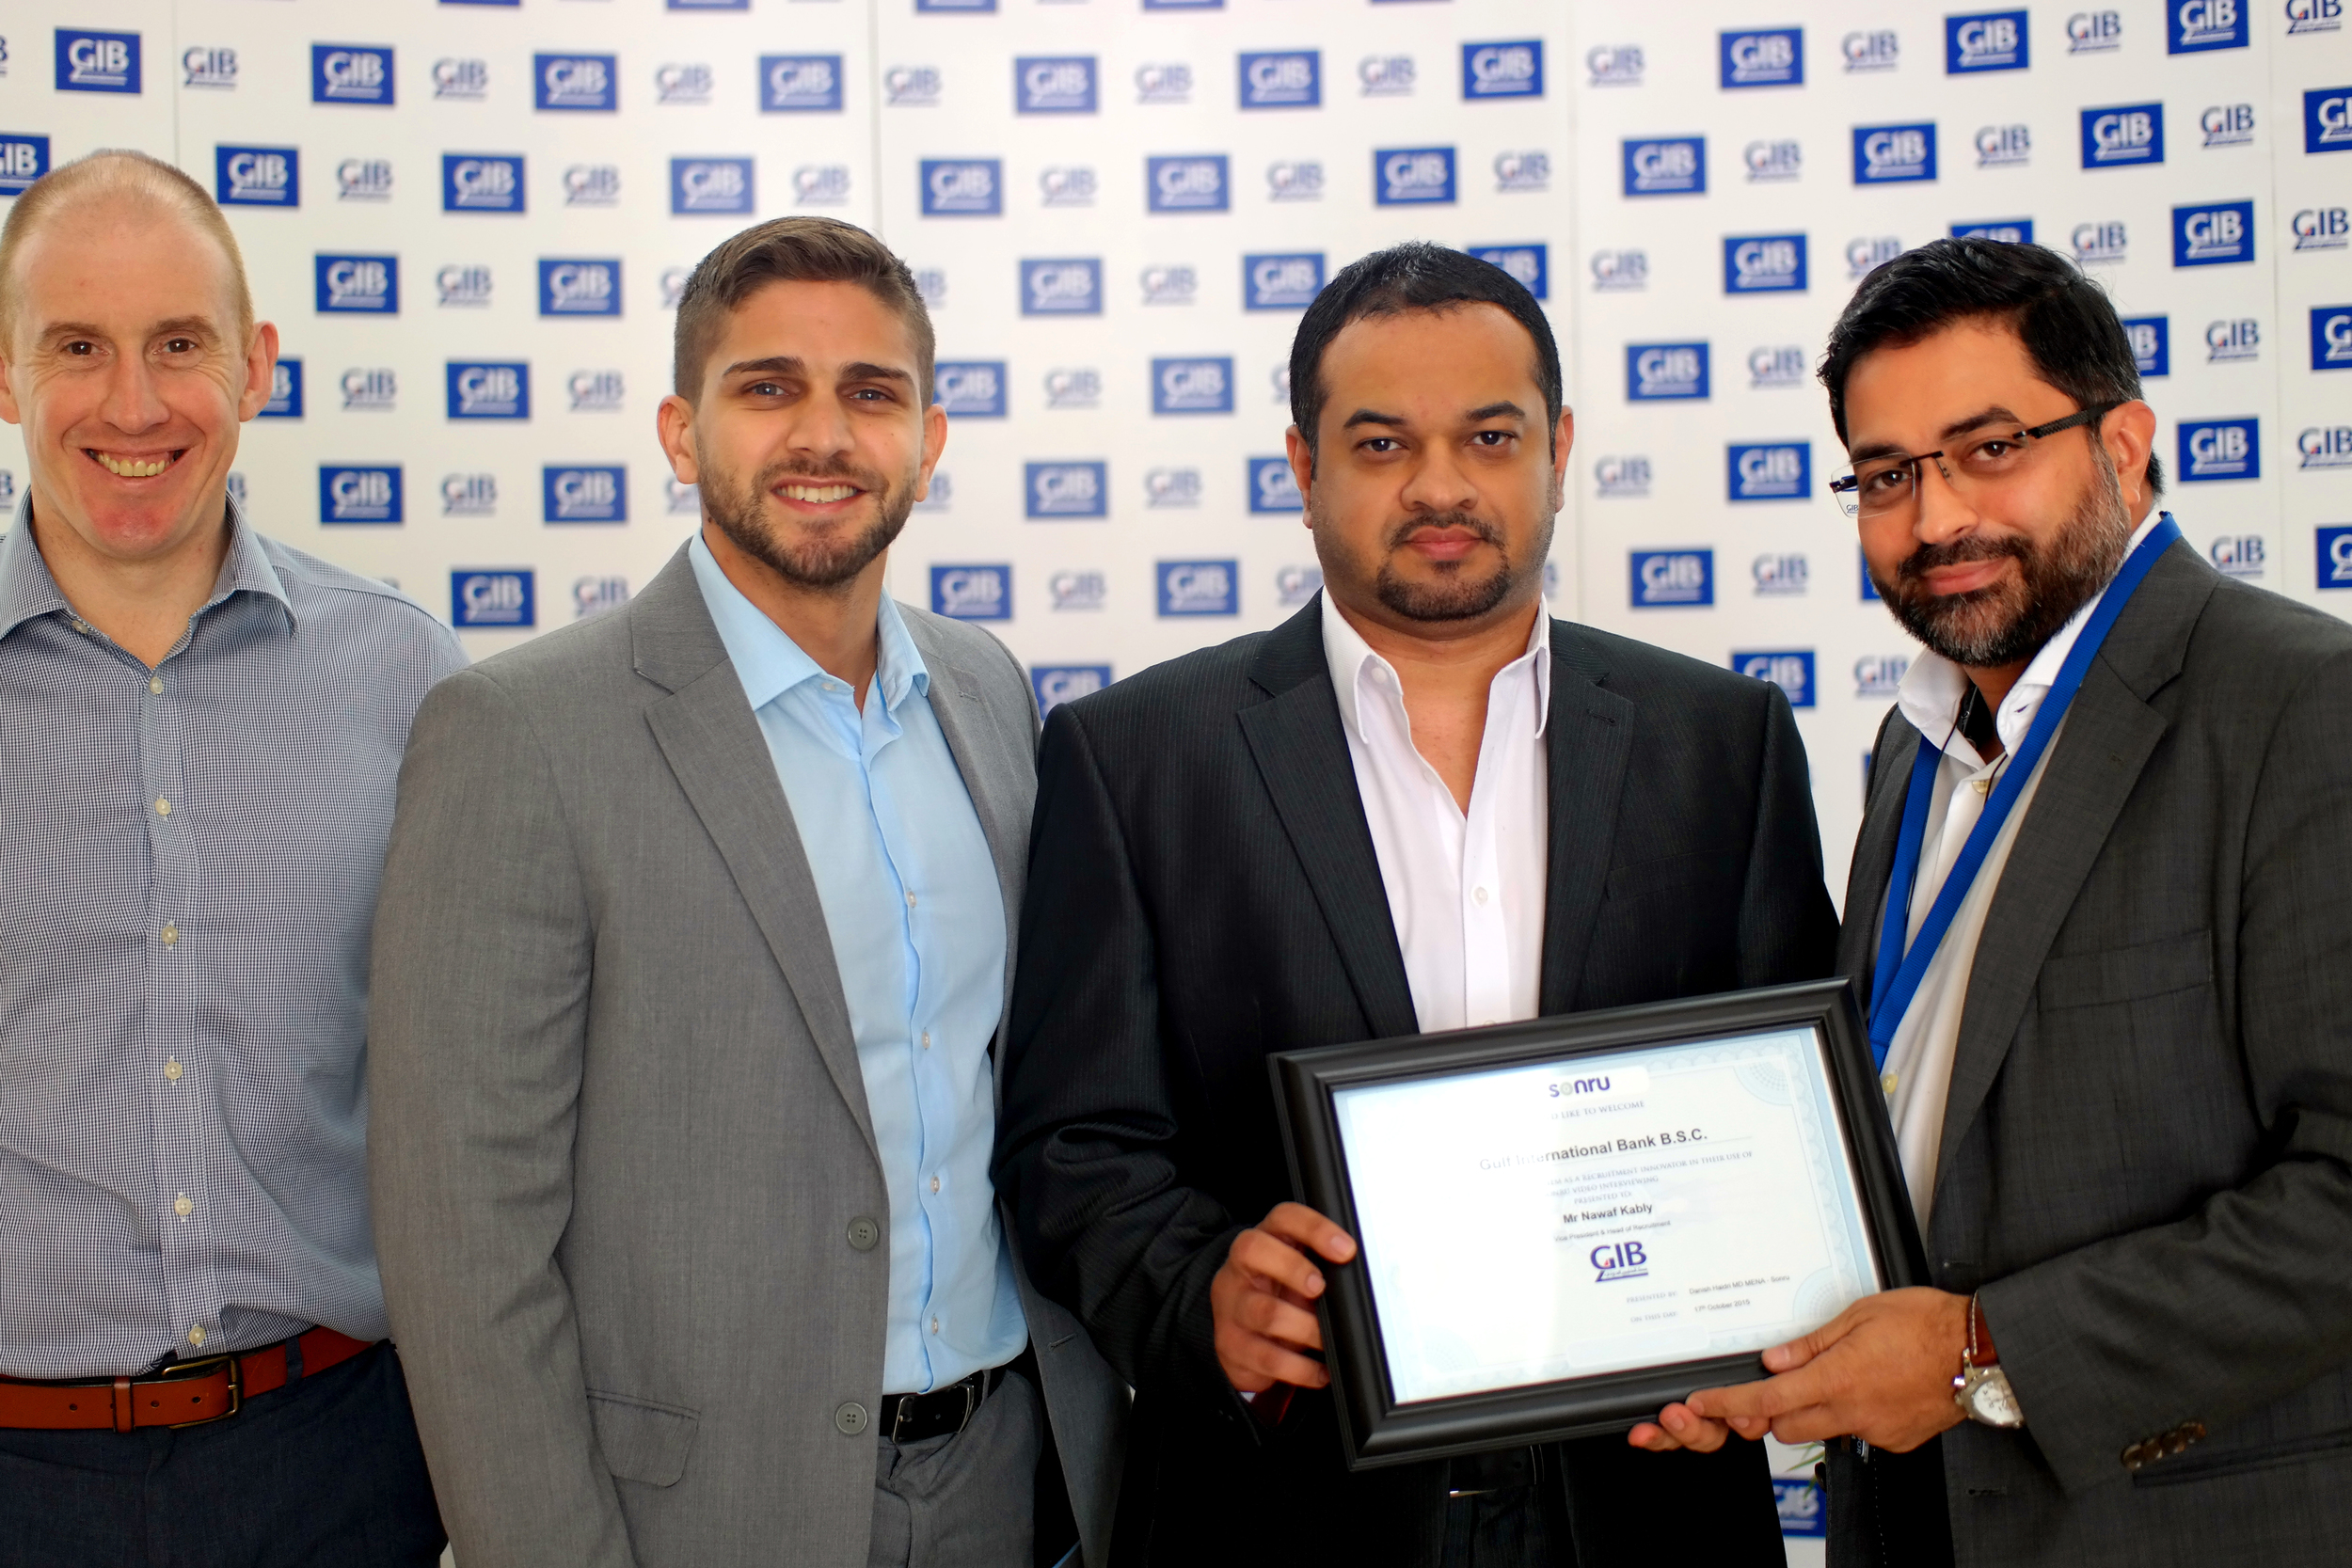 Mr Nawaf Kably - Vice President - Head of Recruitment & Staff Benefits Administration, Human Resources with his team receiving the Sonru Recruitment Innovator Certificate from Danish Haidri MD MENA @ Sonru & Hamilton Resourcing.